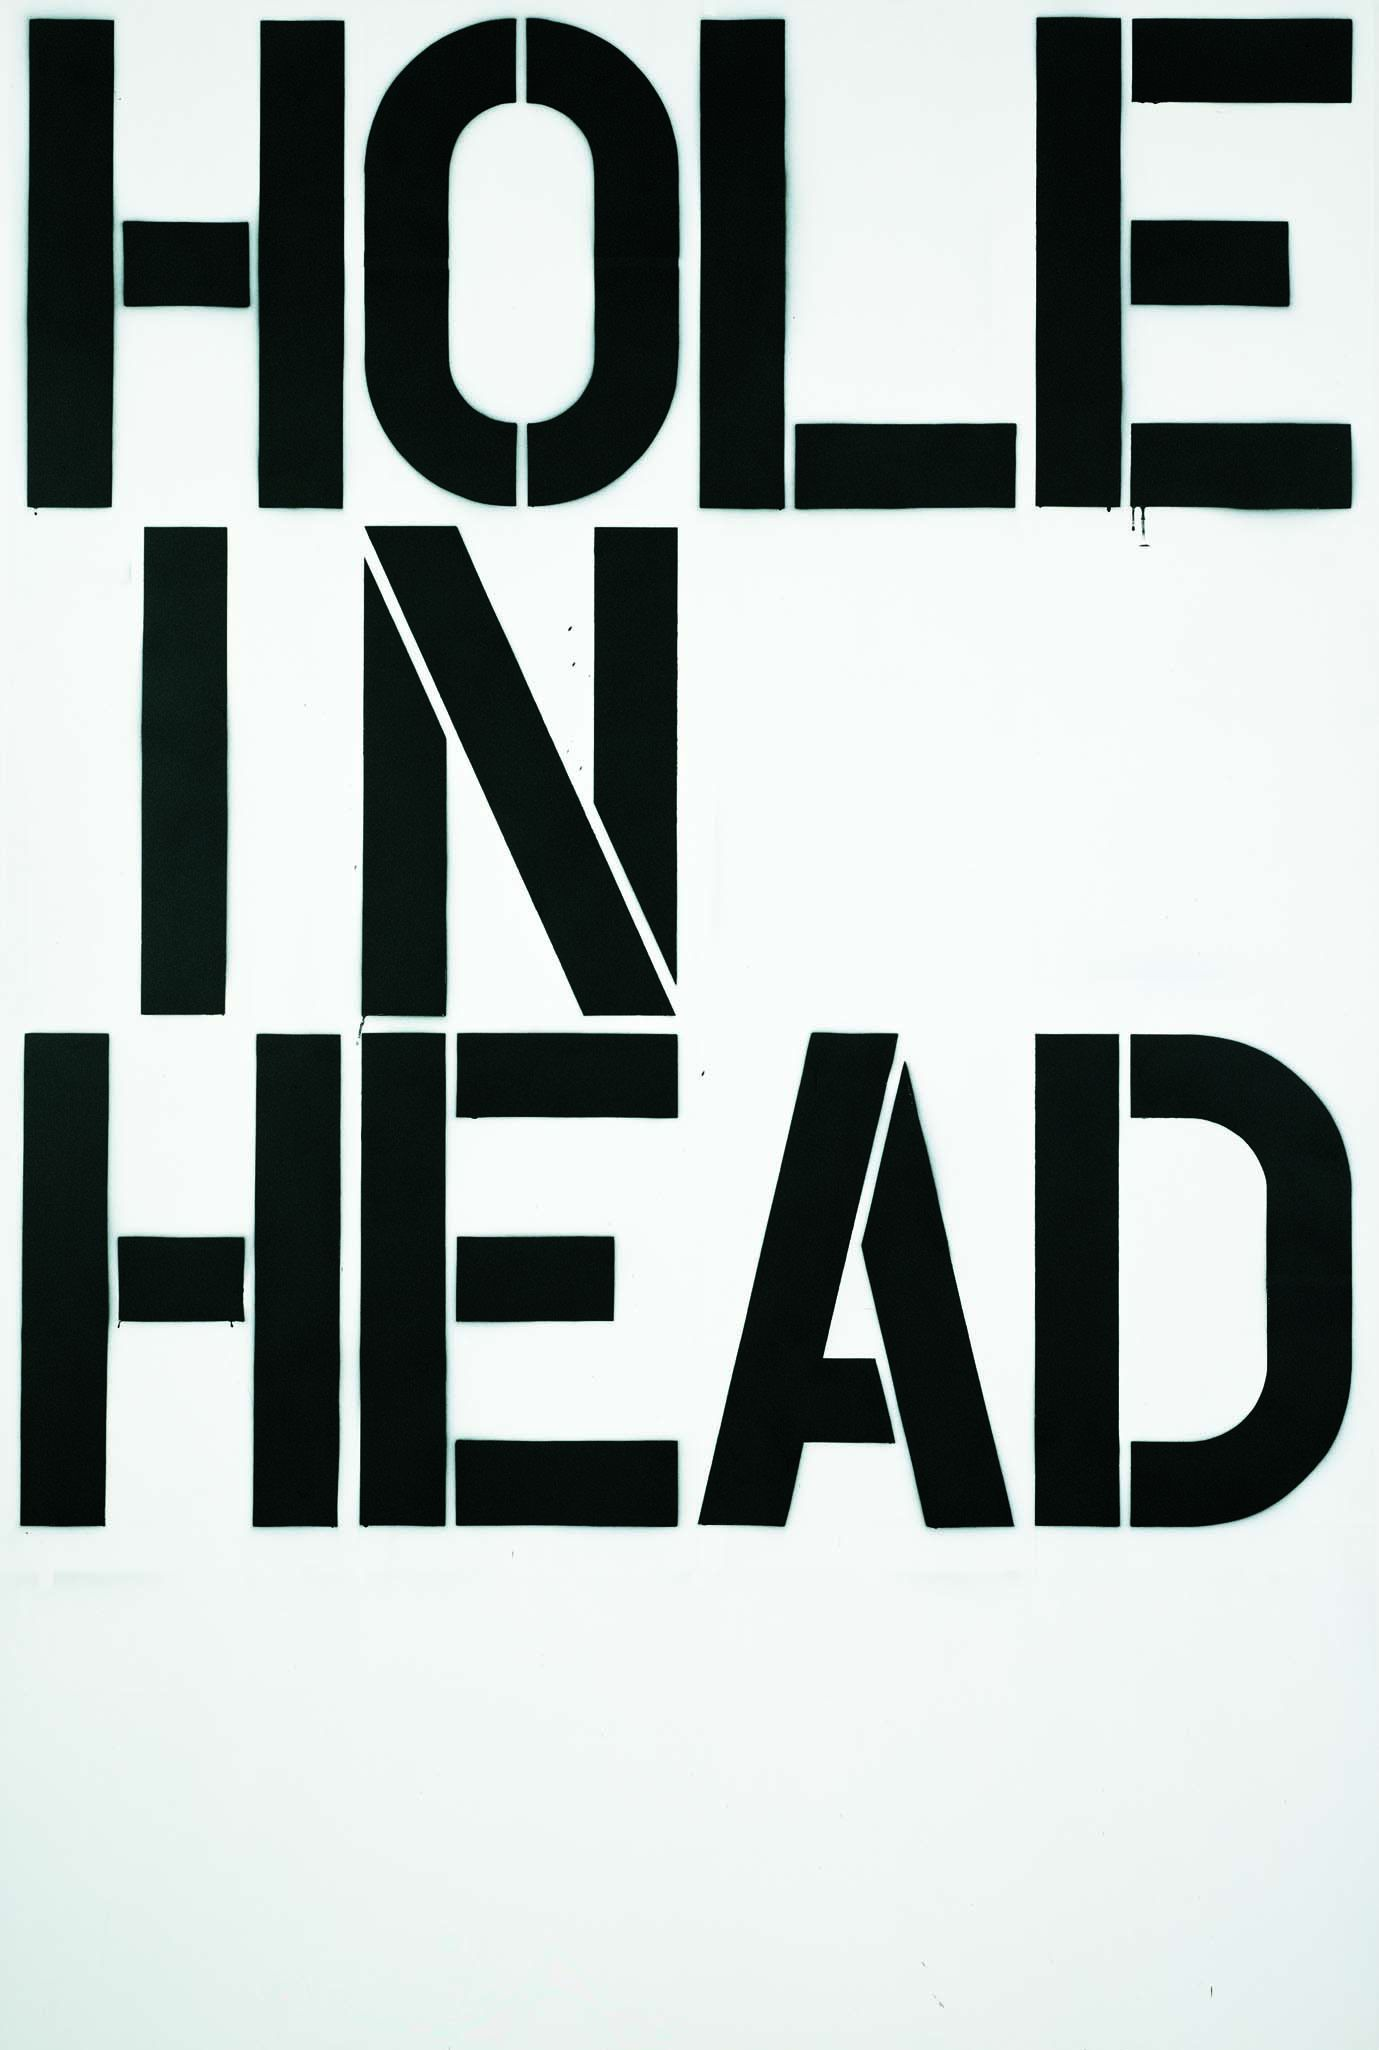 Christopher Wool,  Head  (1992), enamel on aluminium, 274 x 183 cm (107.8 x 72 in.) Courtesy Astrup Fearnley Collection, Oslo, Norway